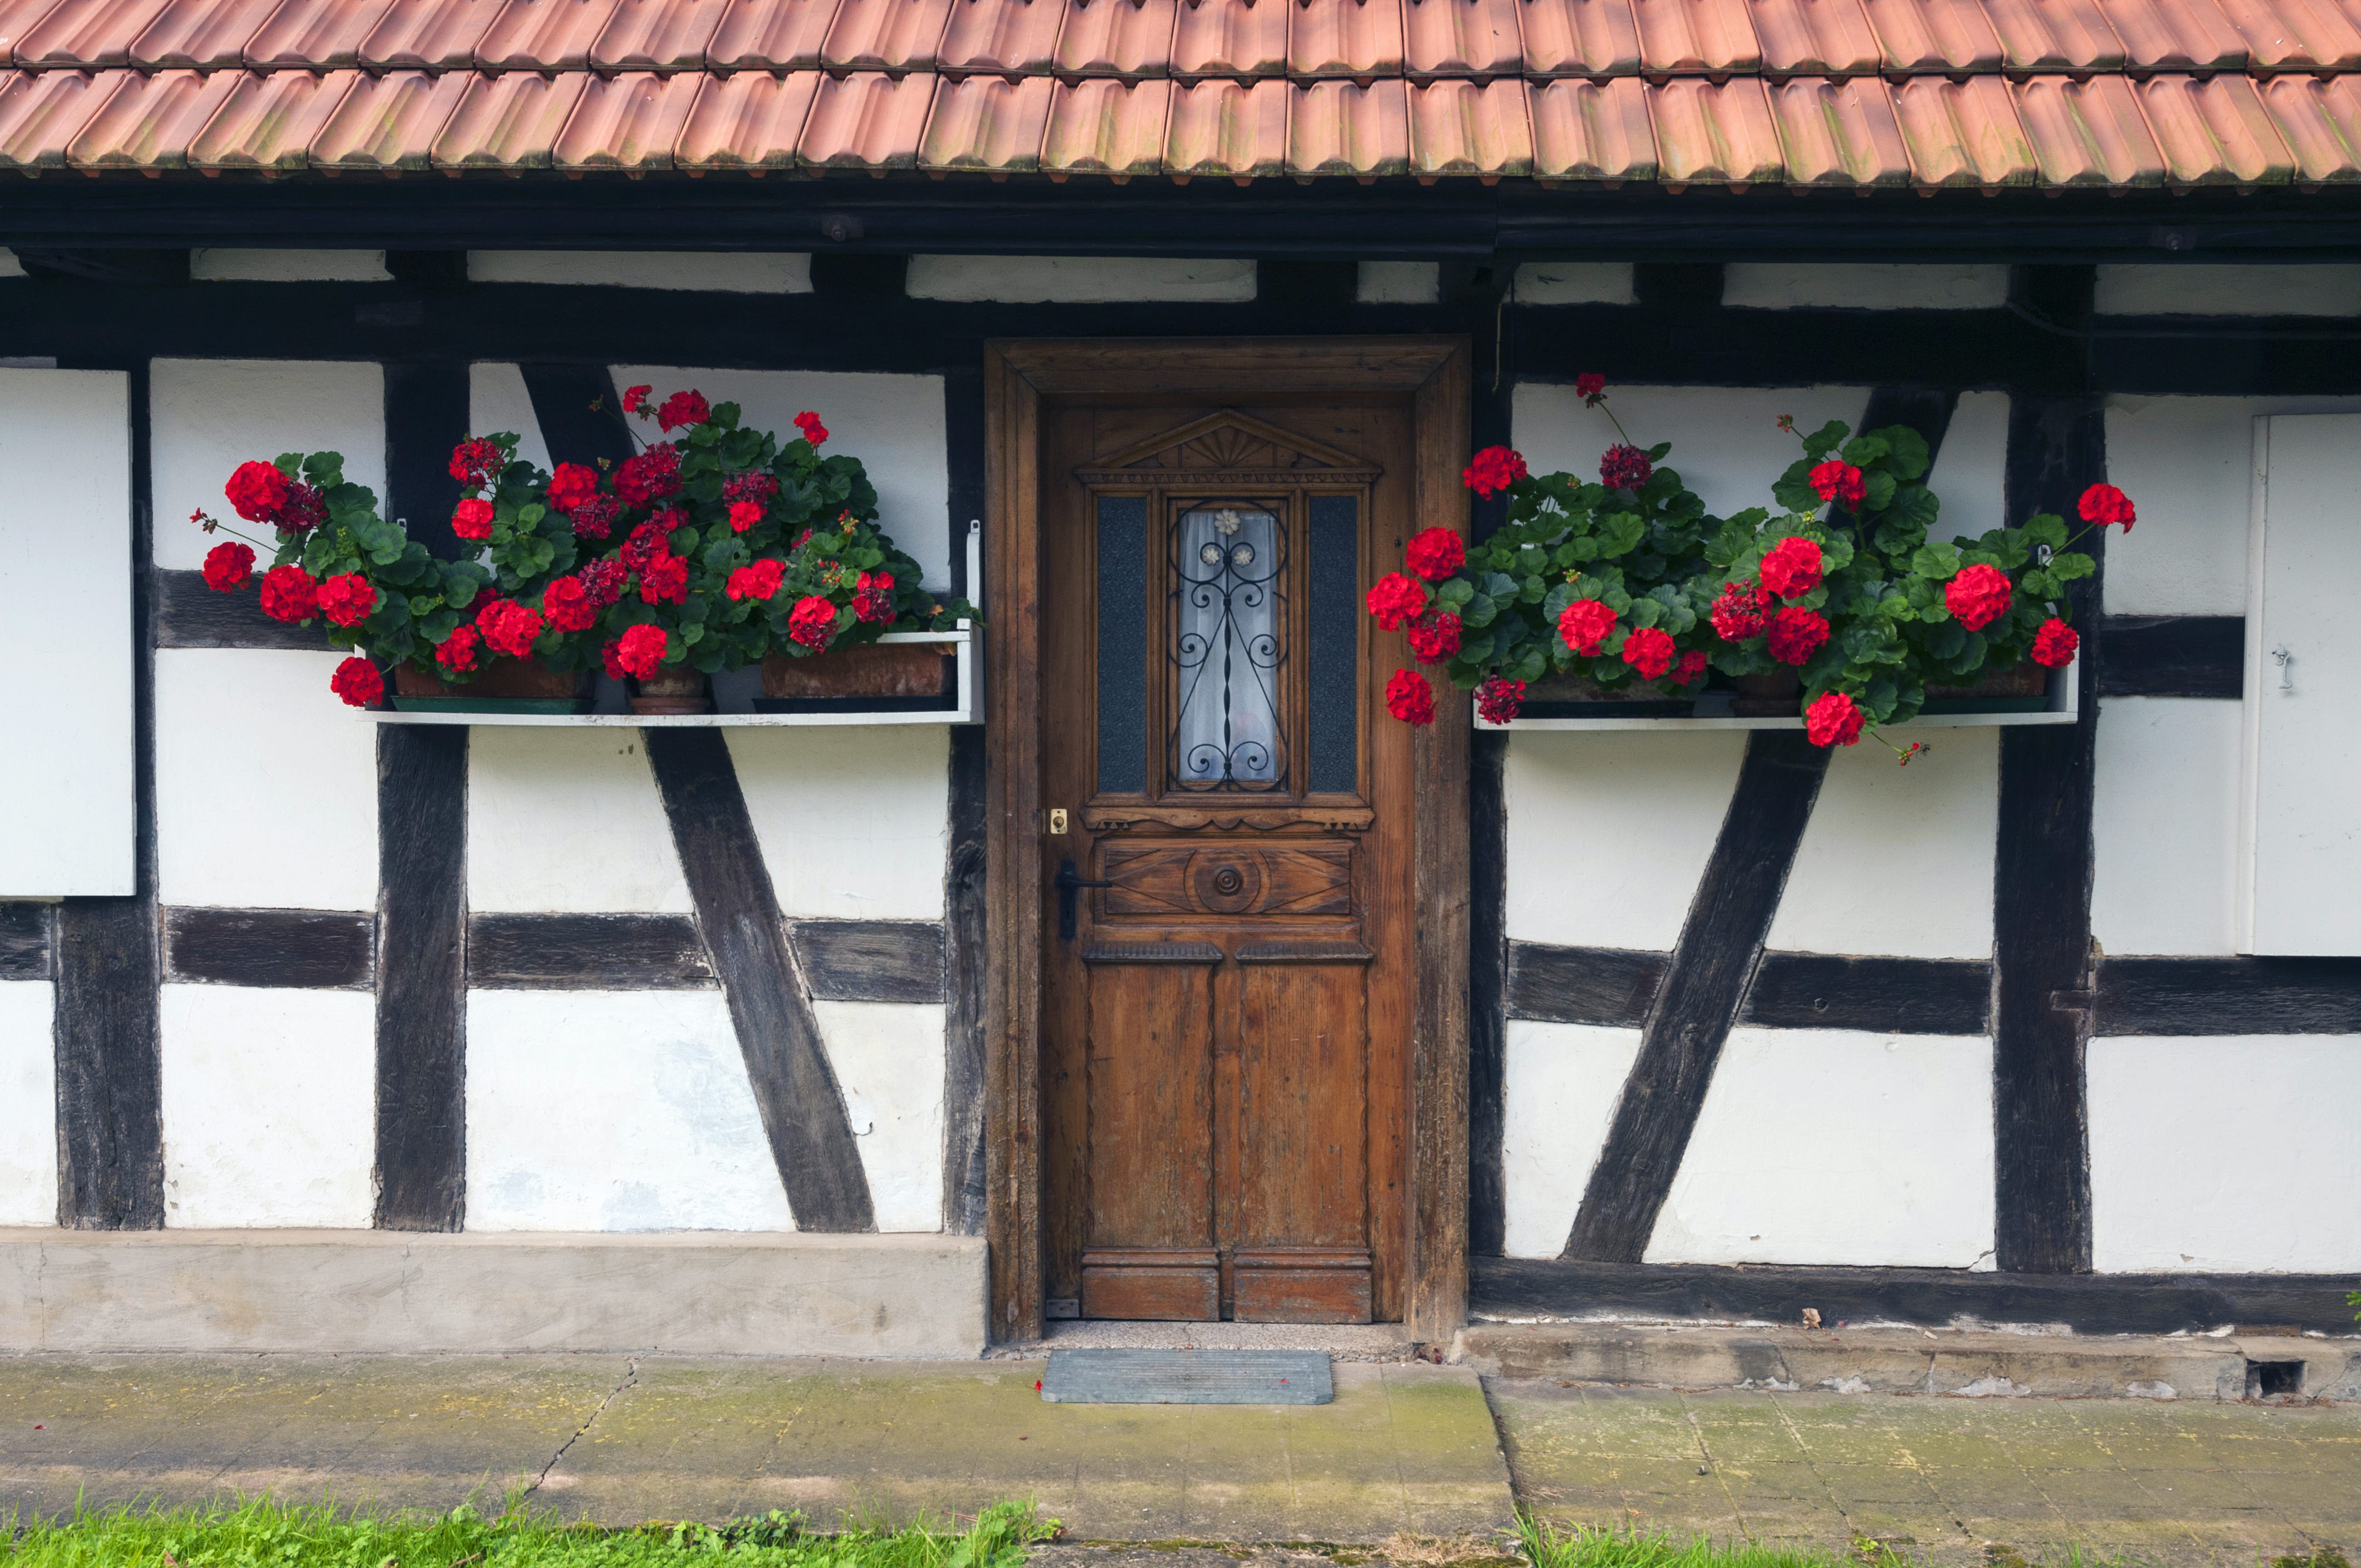 Half-timbered house with flower box windows